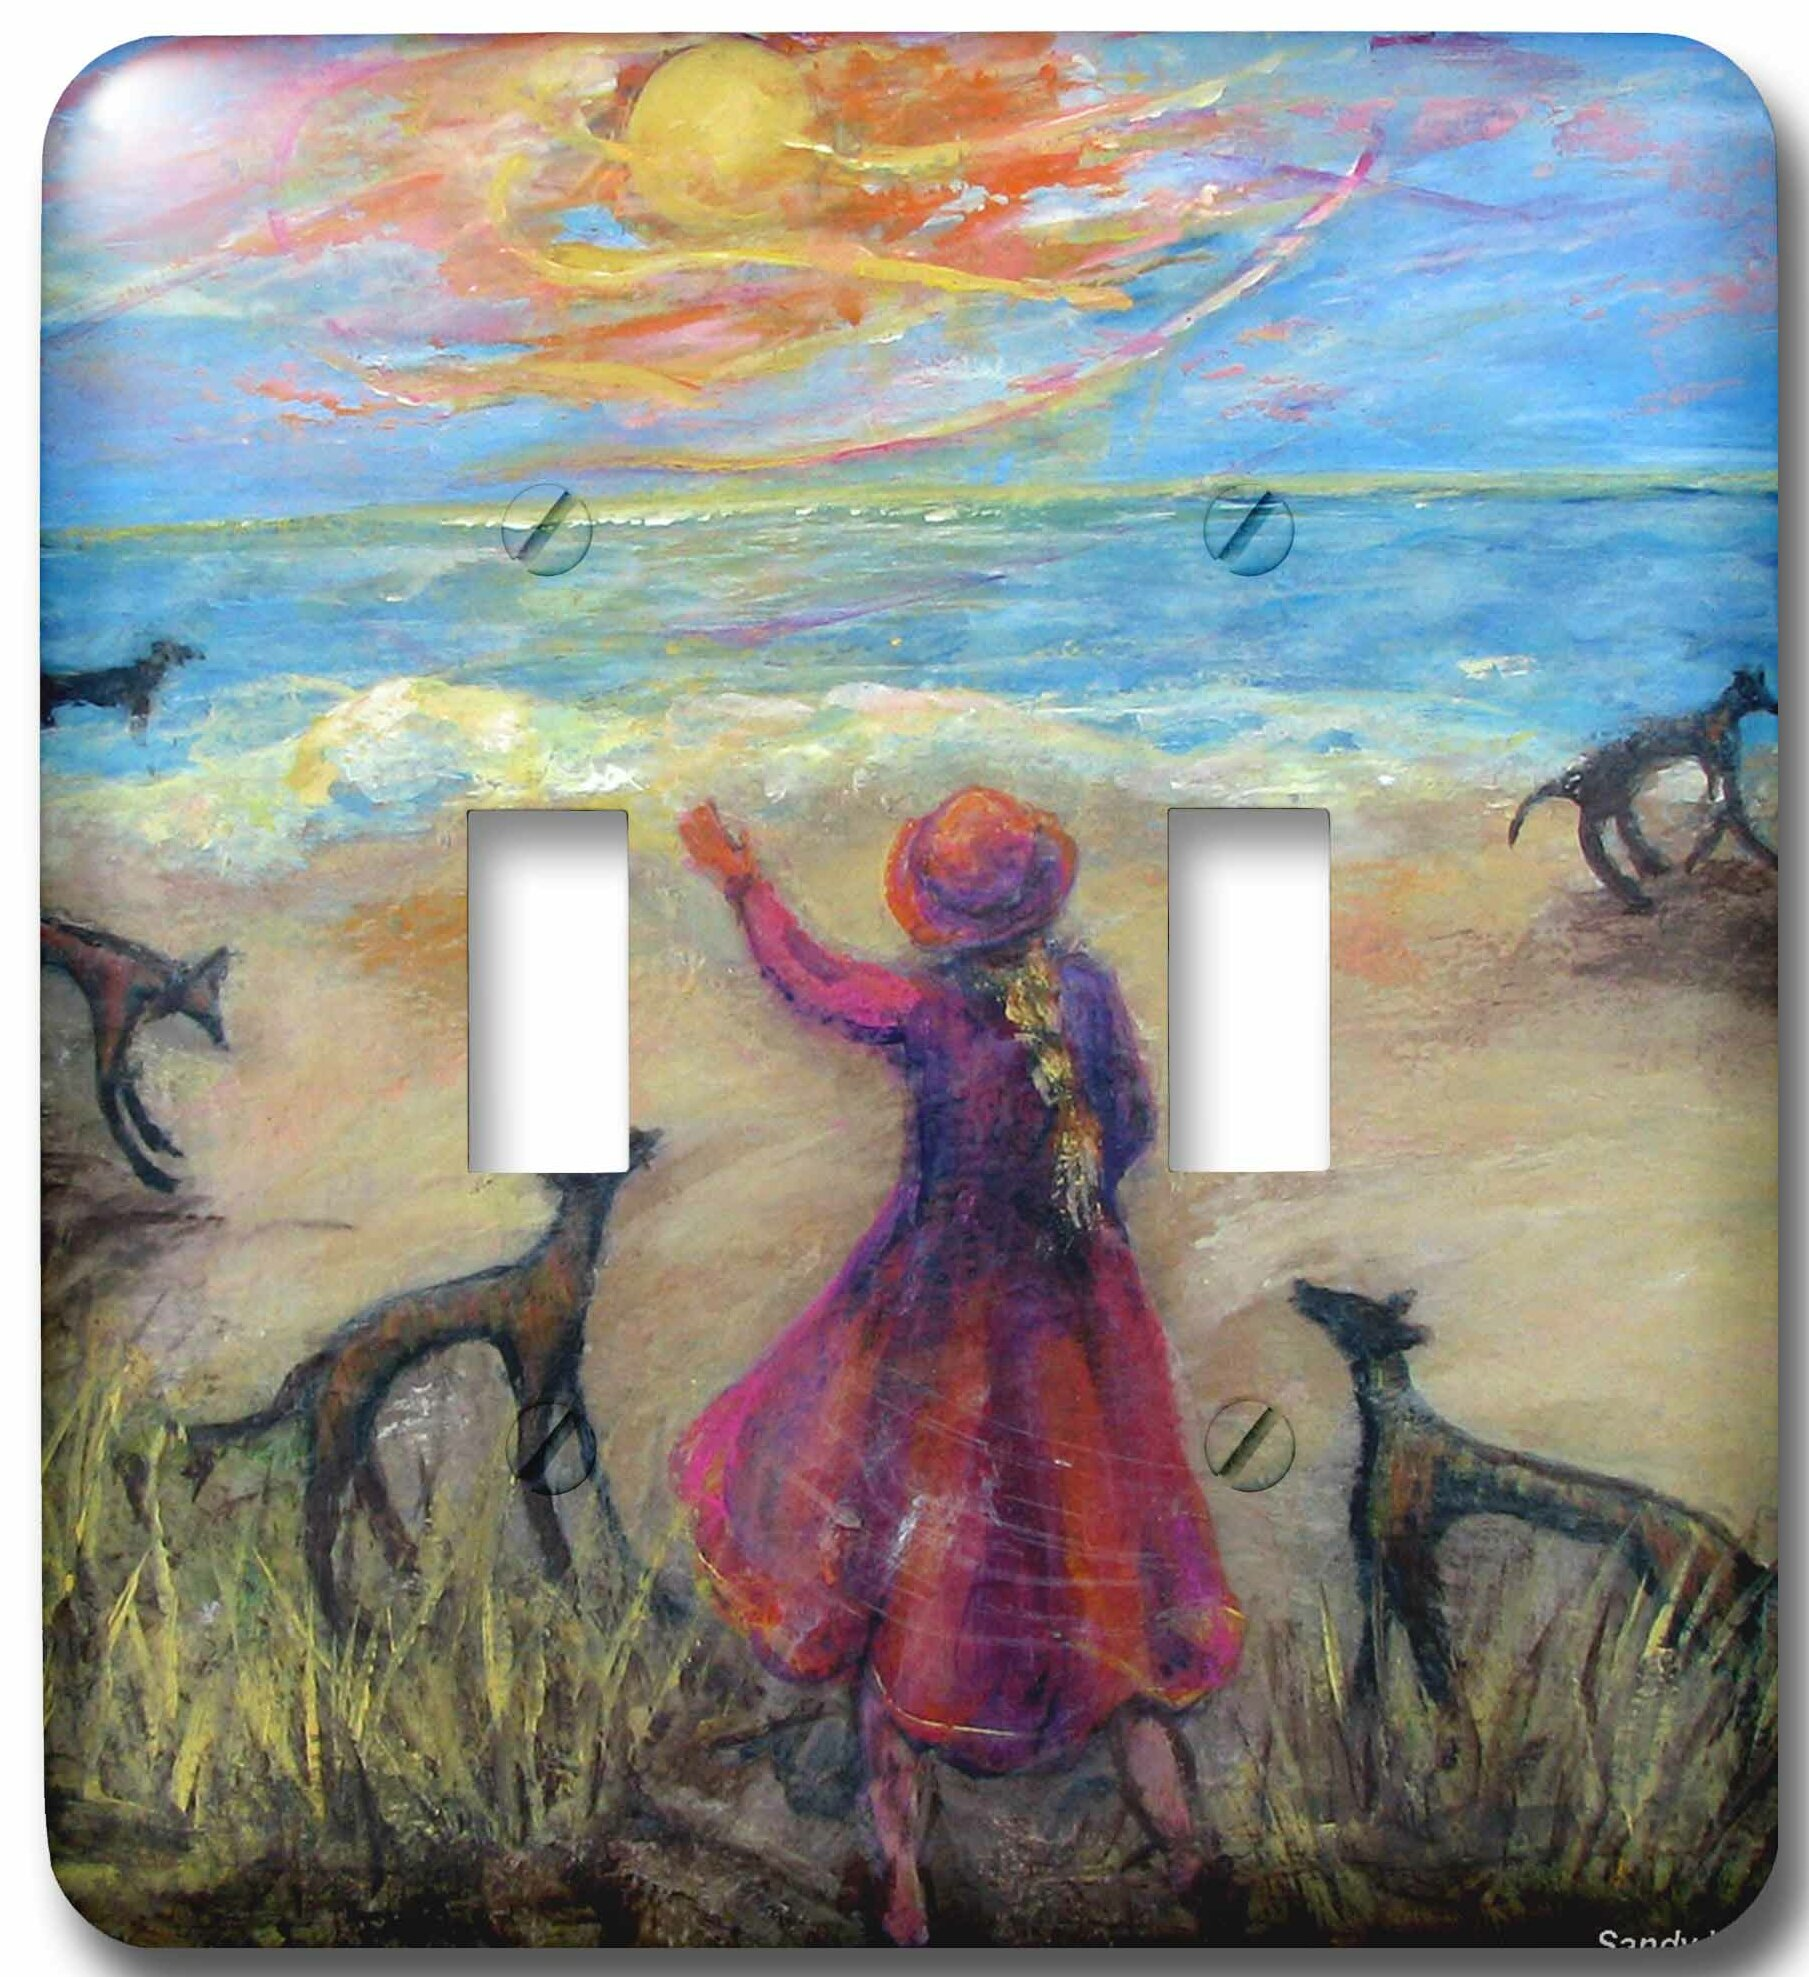 3drose Seaside Girl And Greyhounds Quaint Girl In Plays With Dogs On The Beach 2 Gang Toggle Light Switch Wall Plate Wayfair